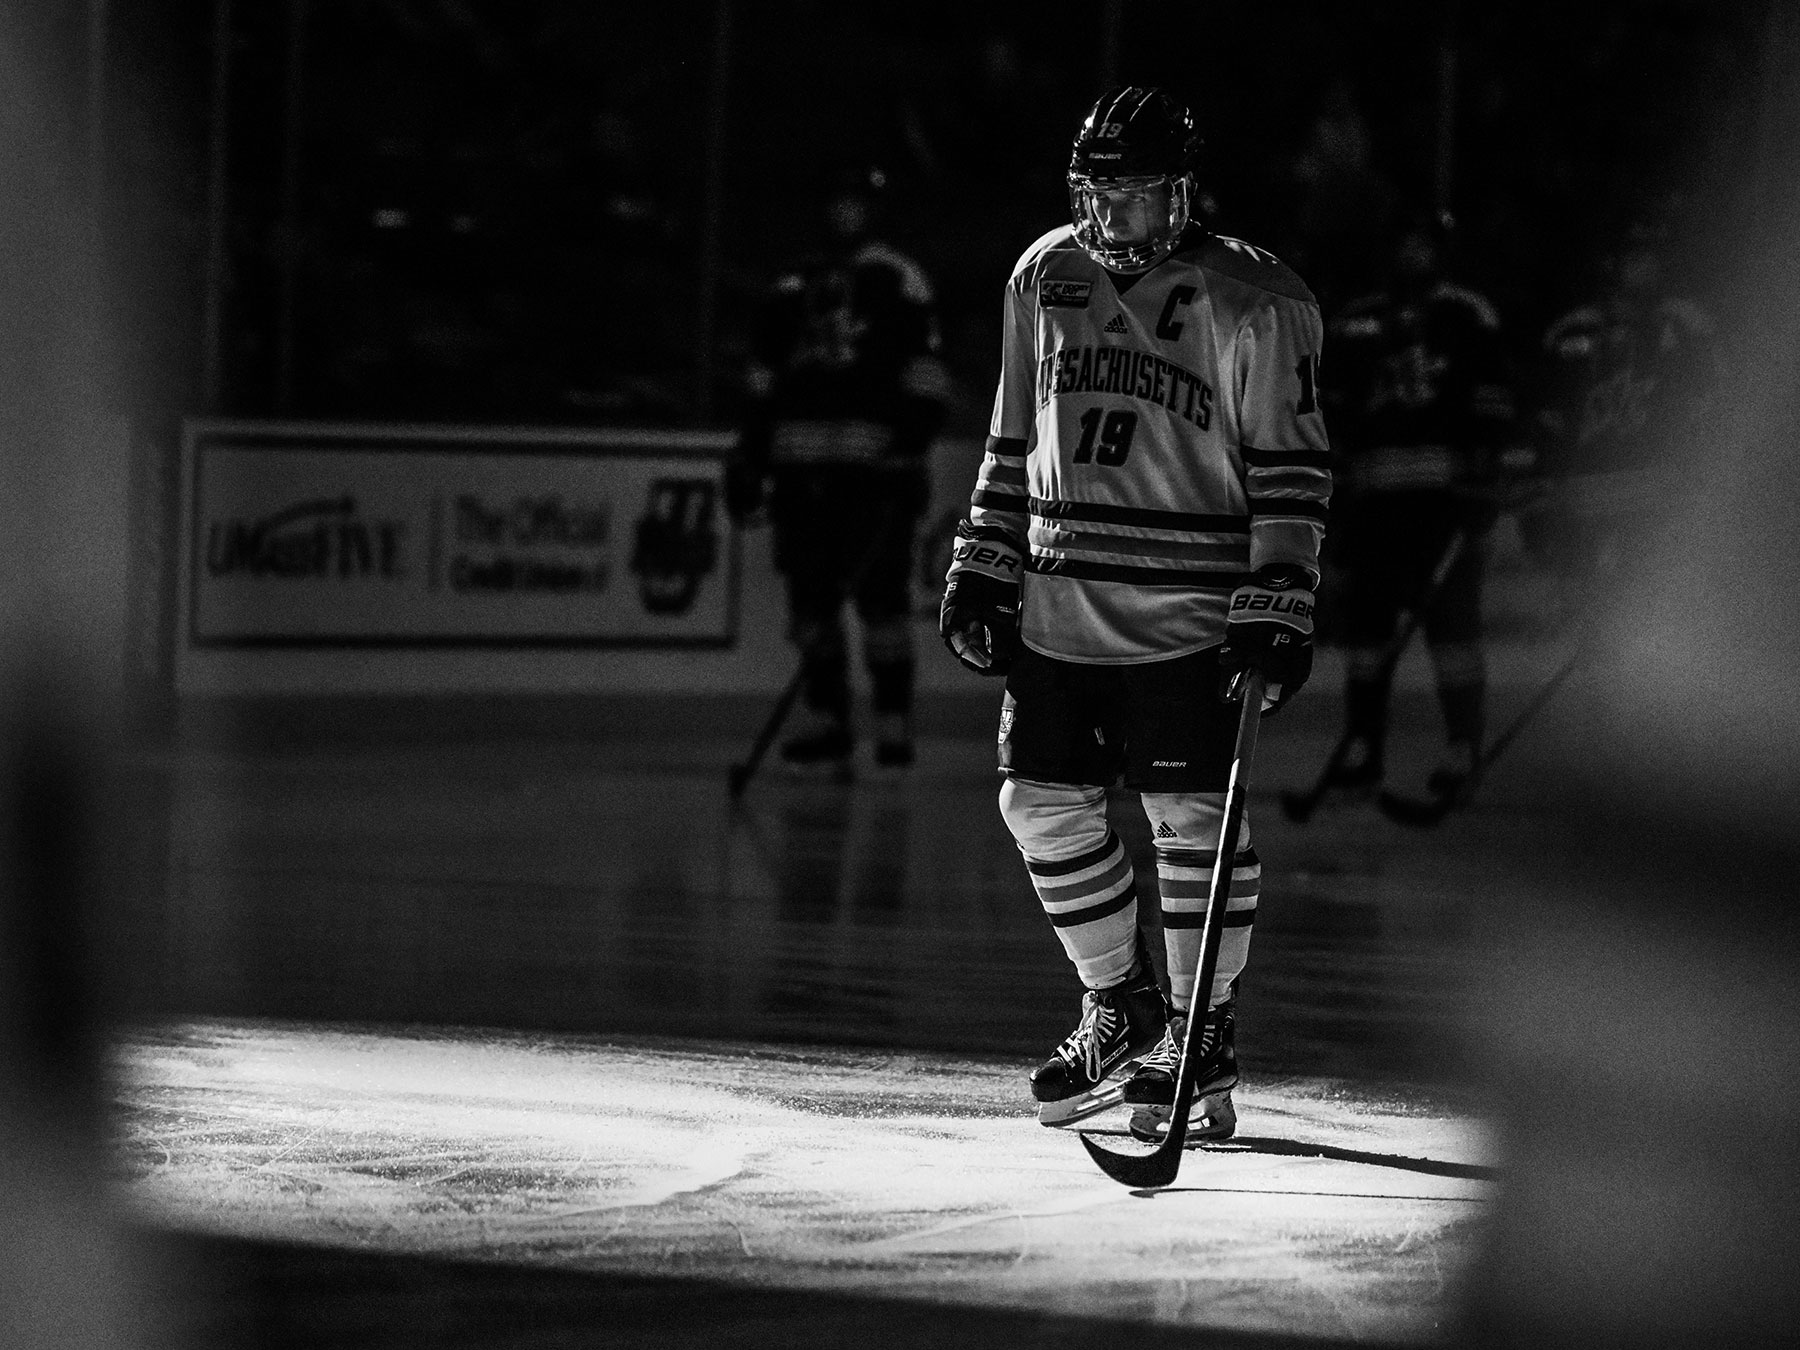 Niko Hildenbrand, UMass hockey